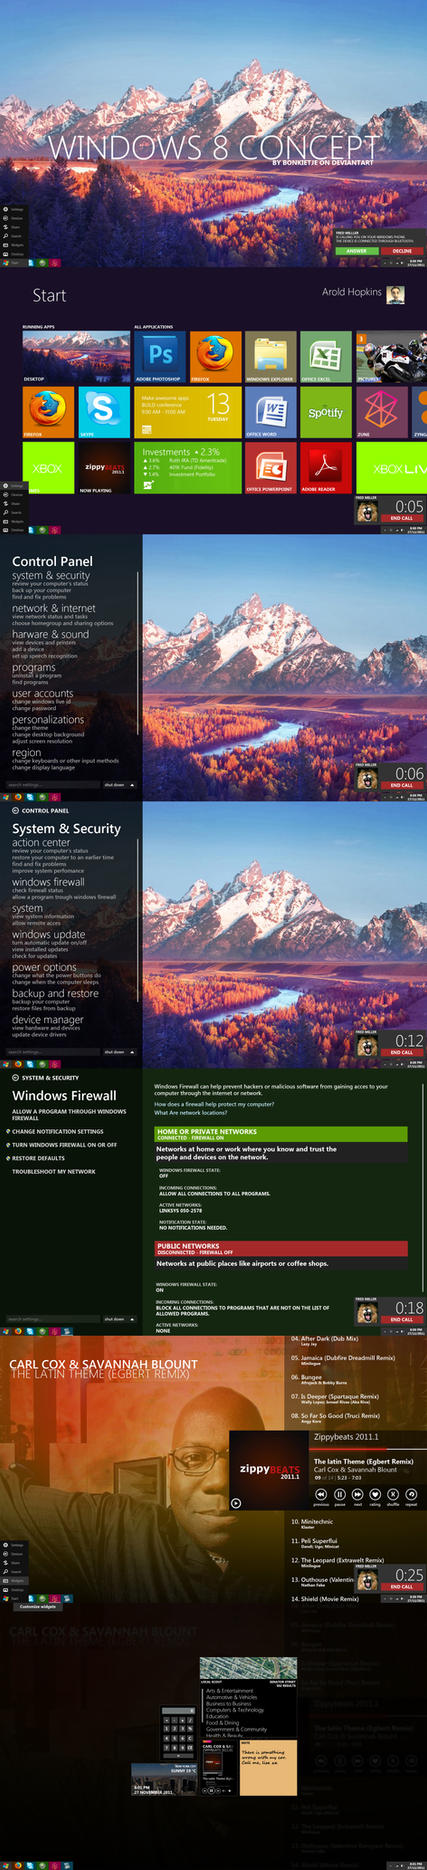 Windows 8 Metro v3.2 by Bonkietje